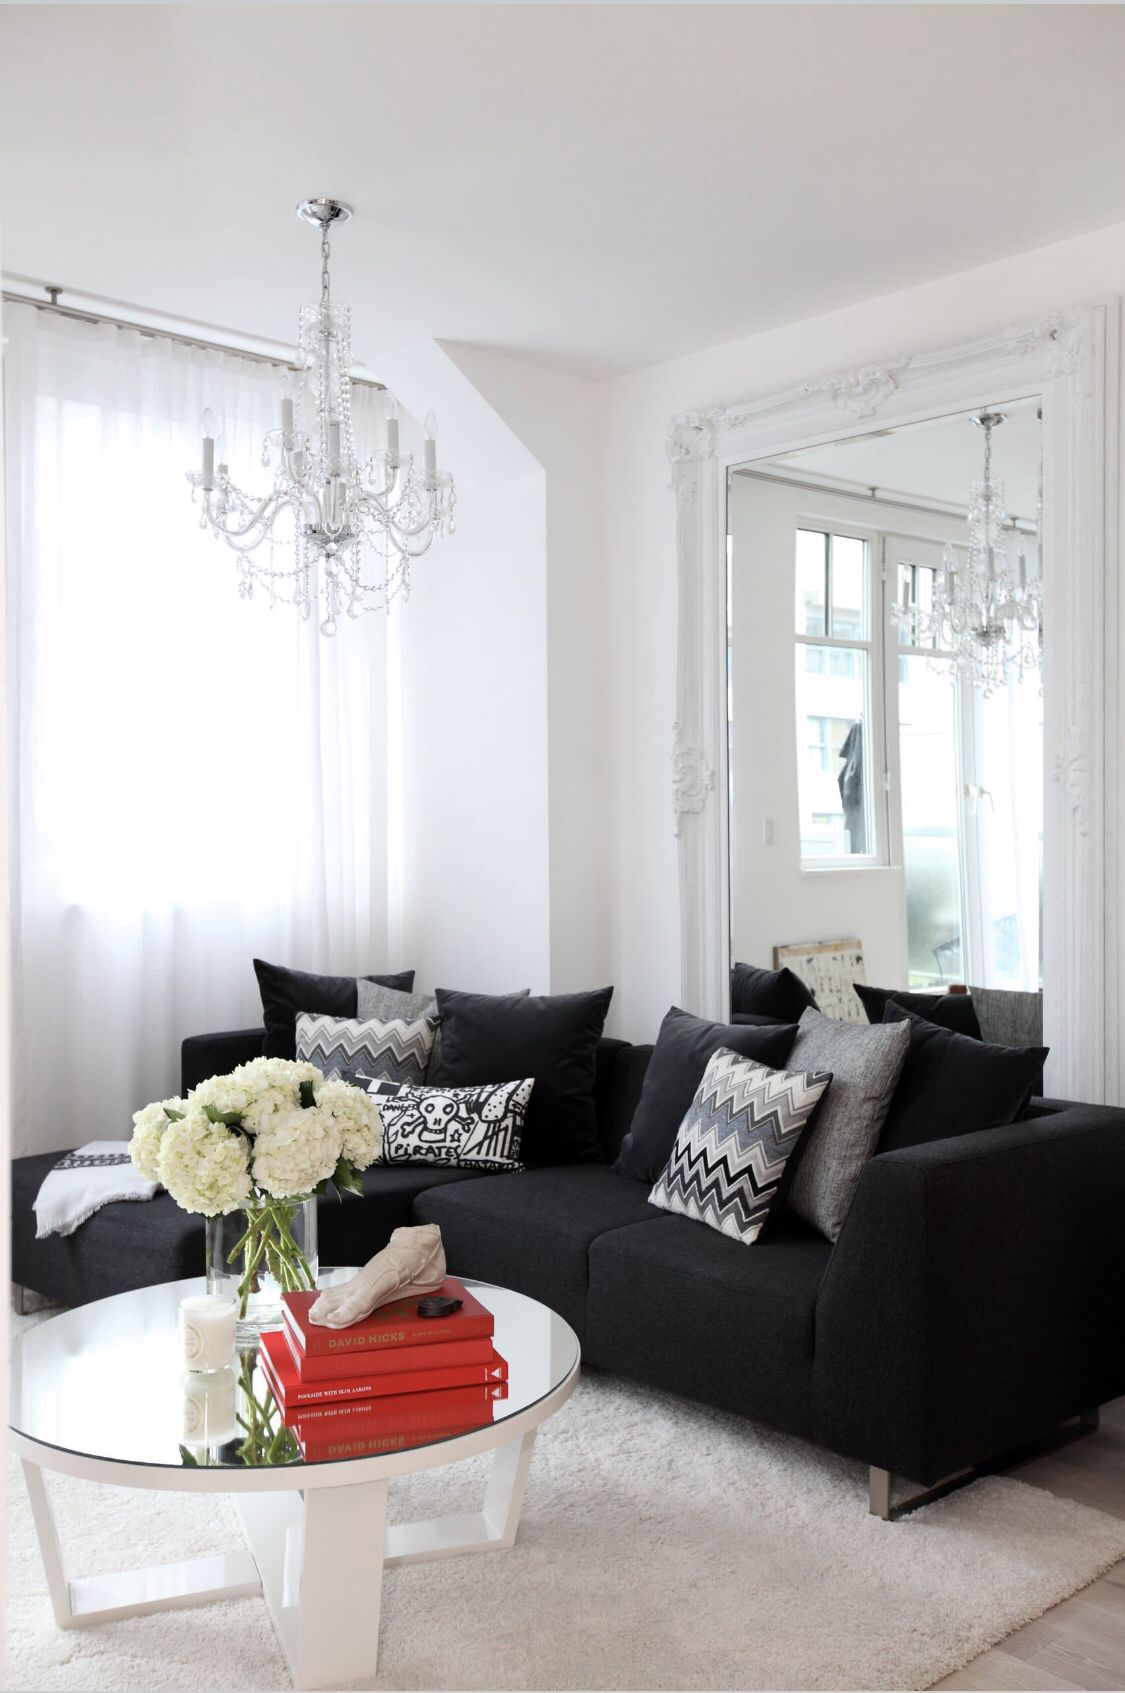 How To Style A Black Sofa Black Couch Decor Black Couch Living Room Black Sofa Living Room